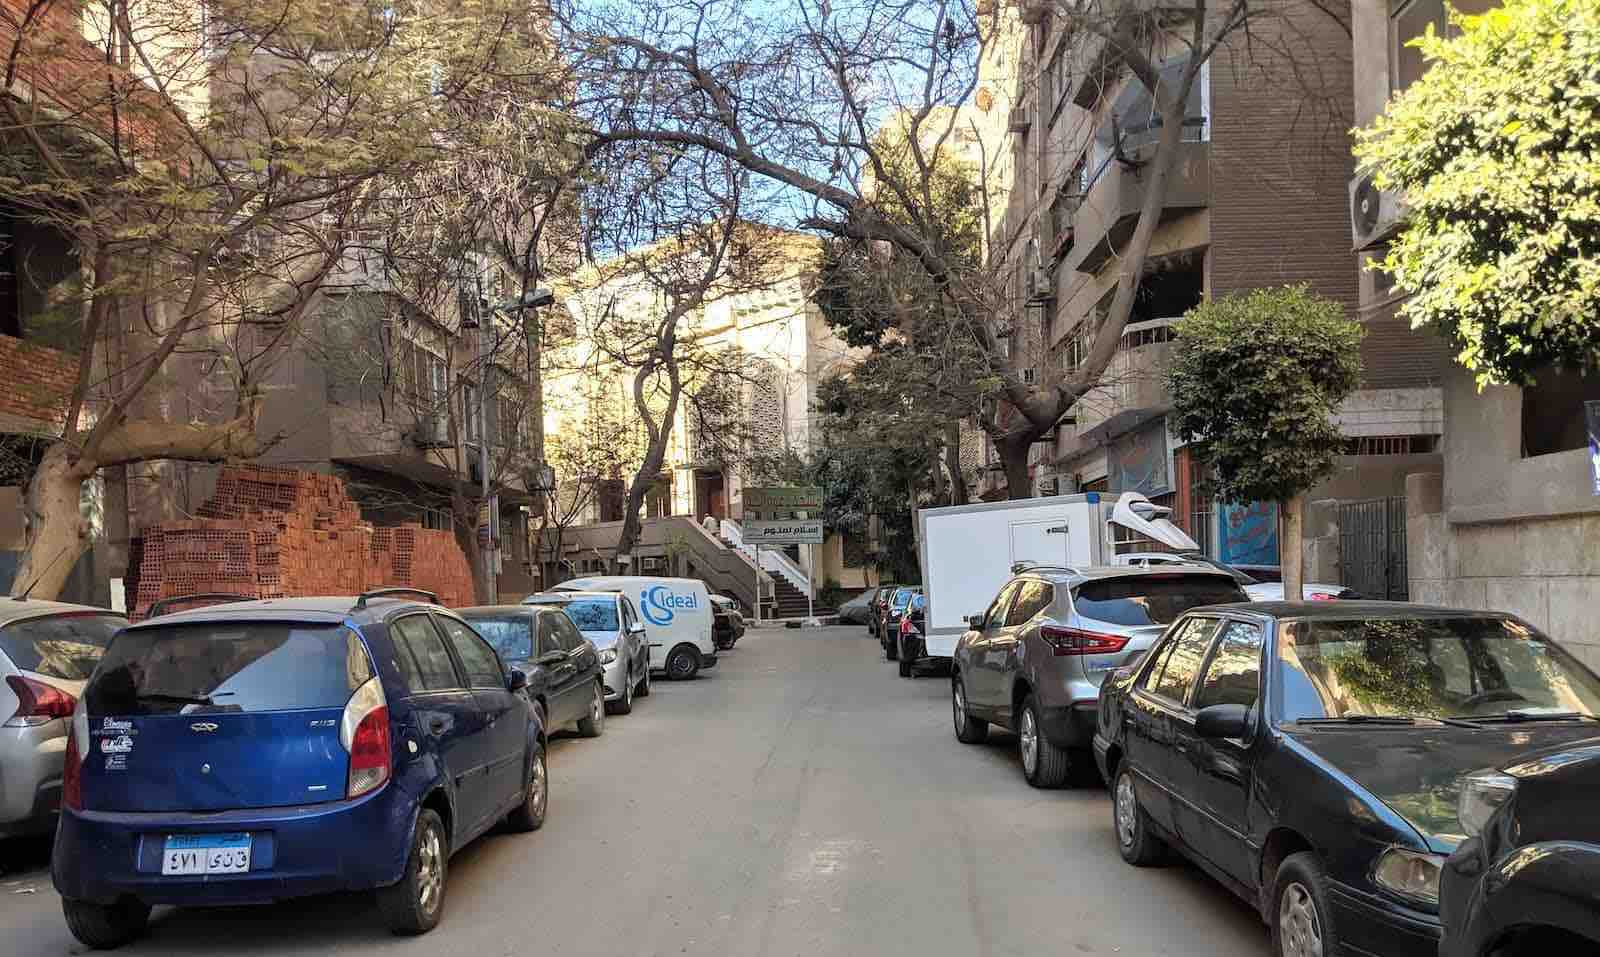 Neighbourhoods of Cairo - Dokki - Cars on street